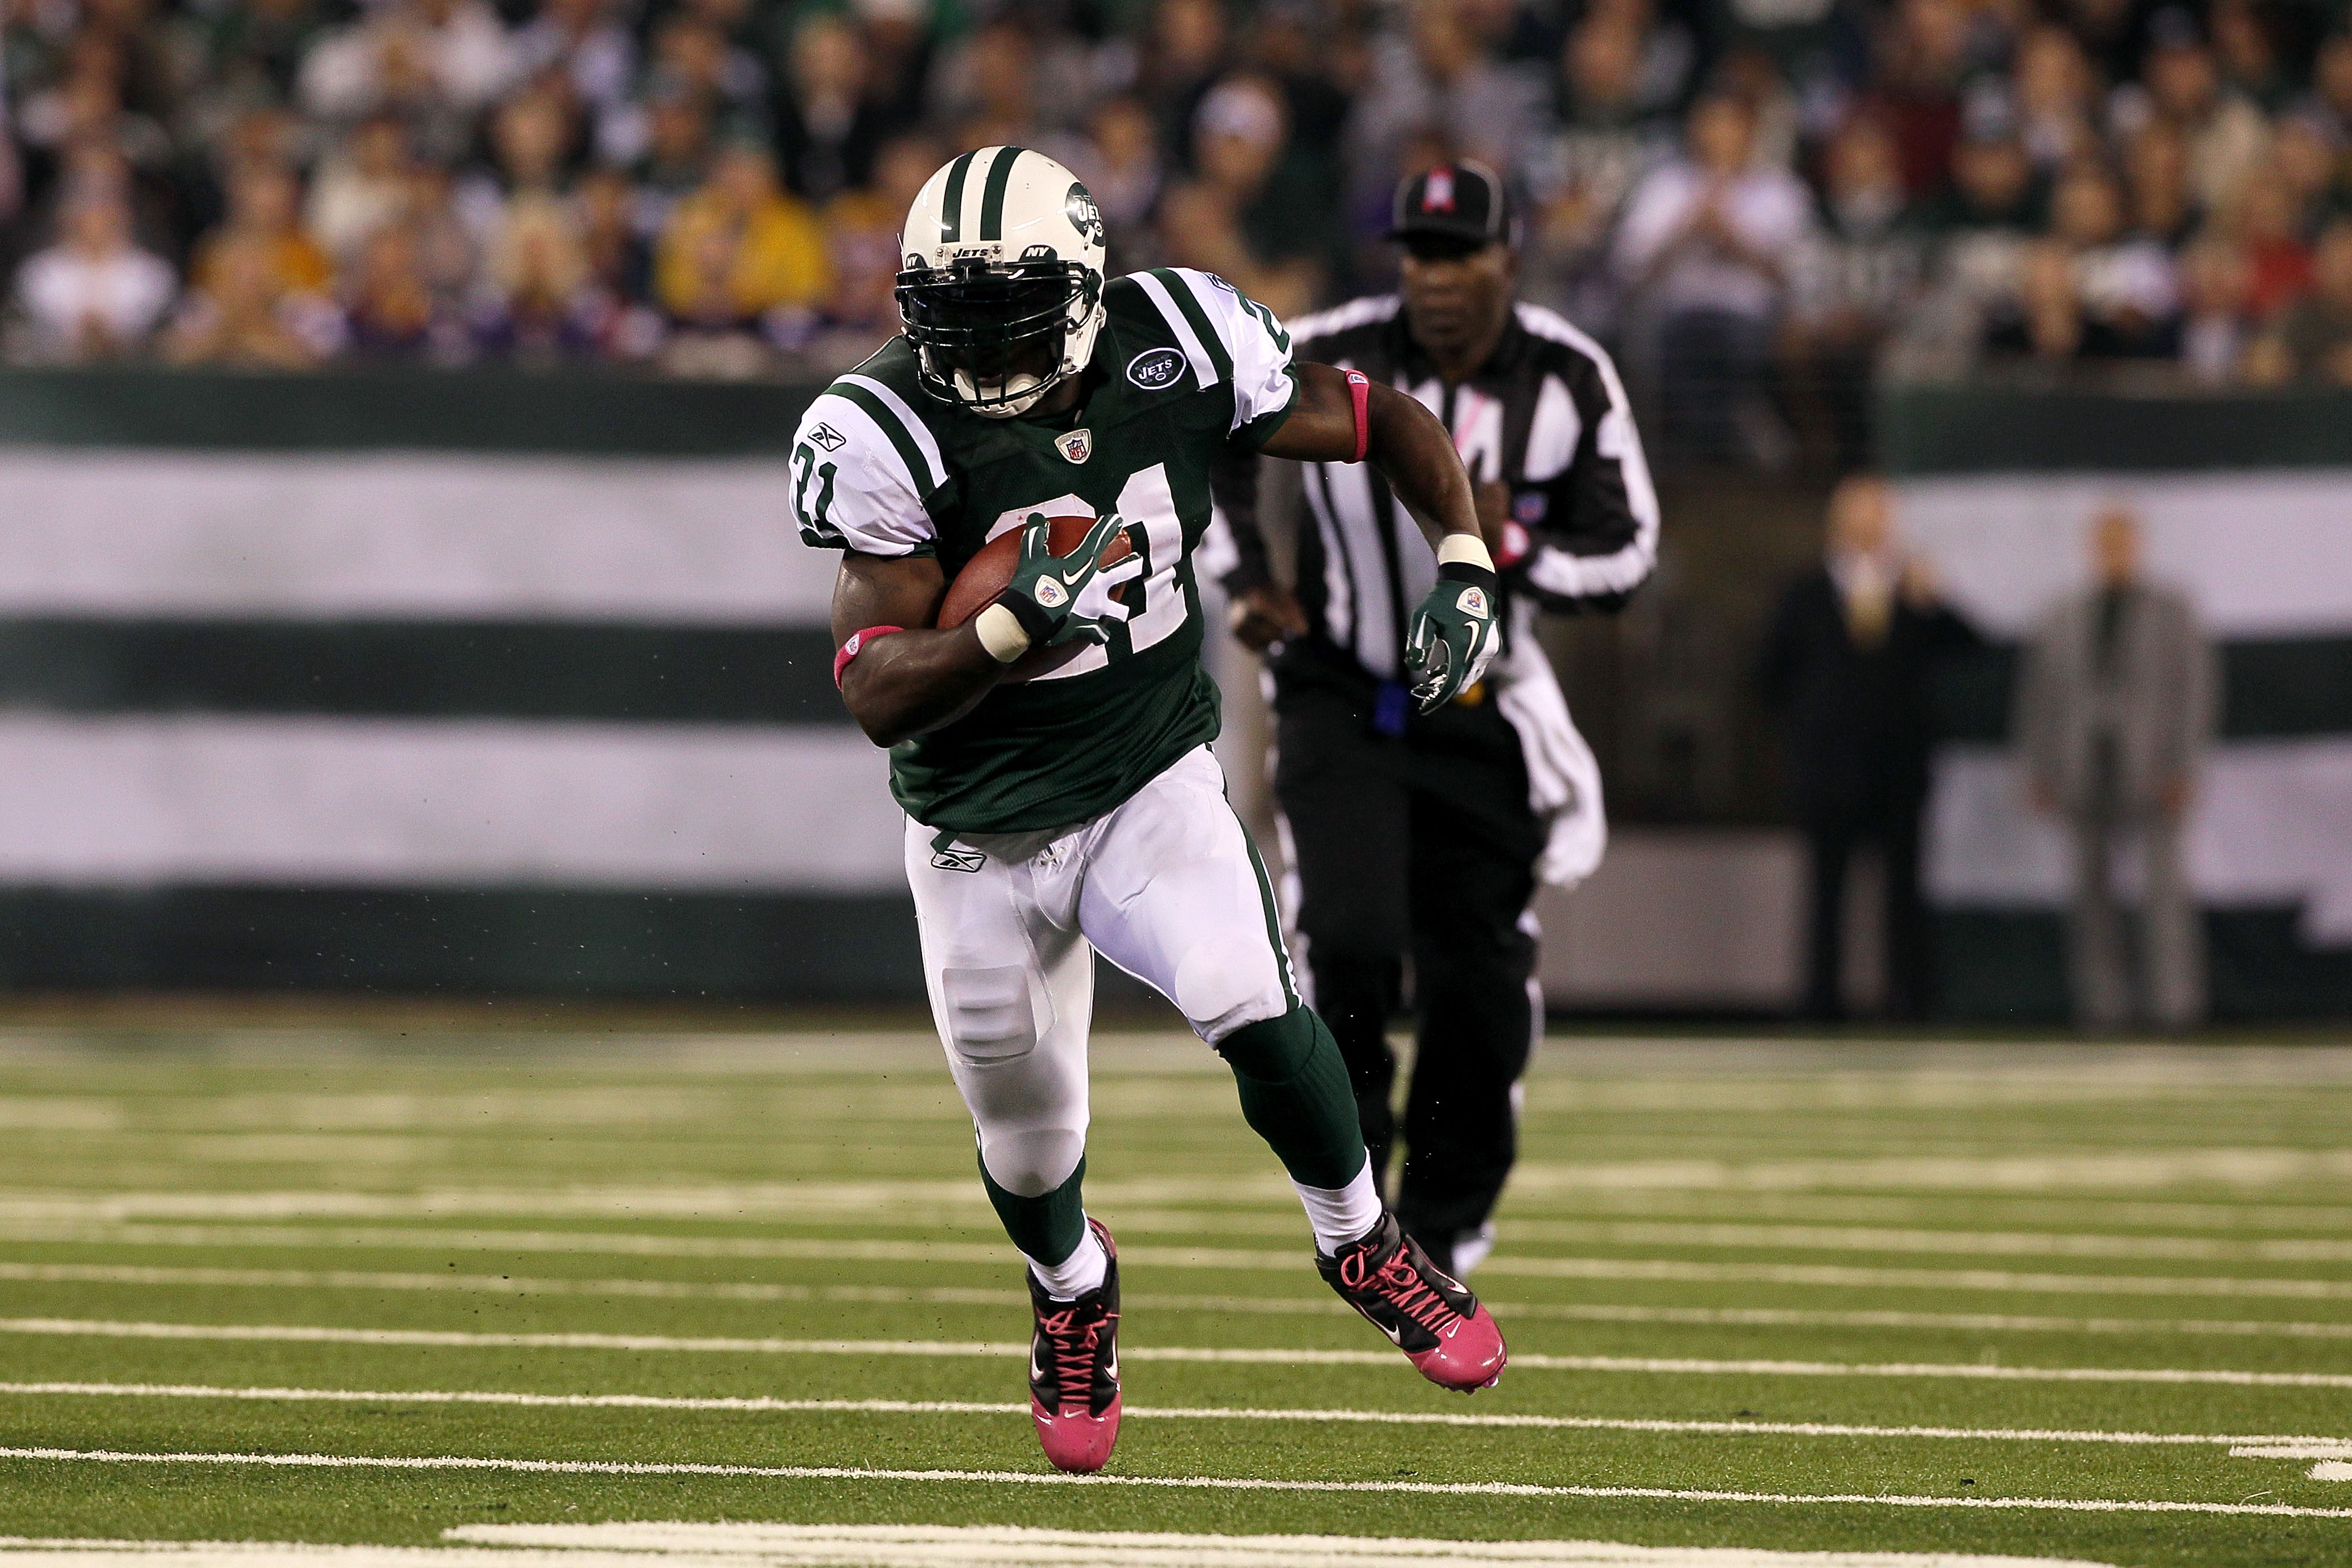 EAST RUTHERFORD, NJ - OCTOBER 11:  LaDainian Tomlinson #21 of the New York Jets runs the ball against the Minnesota Vikings at New Meadowlands Stadium on October 11, 2010 in East Rutherford, New Jersey. The Jets won 29-20.  (Photo by Jim McIsaac/Getty Ima